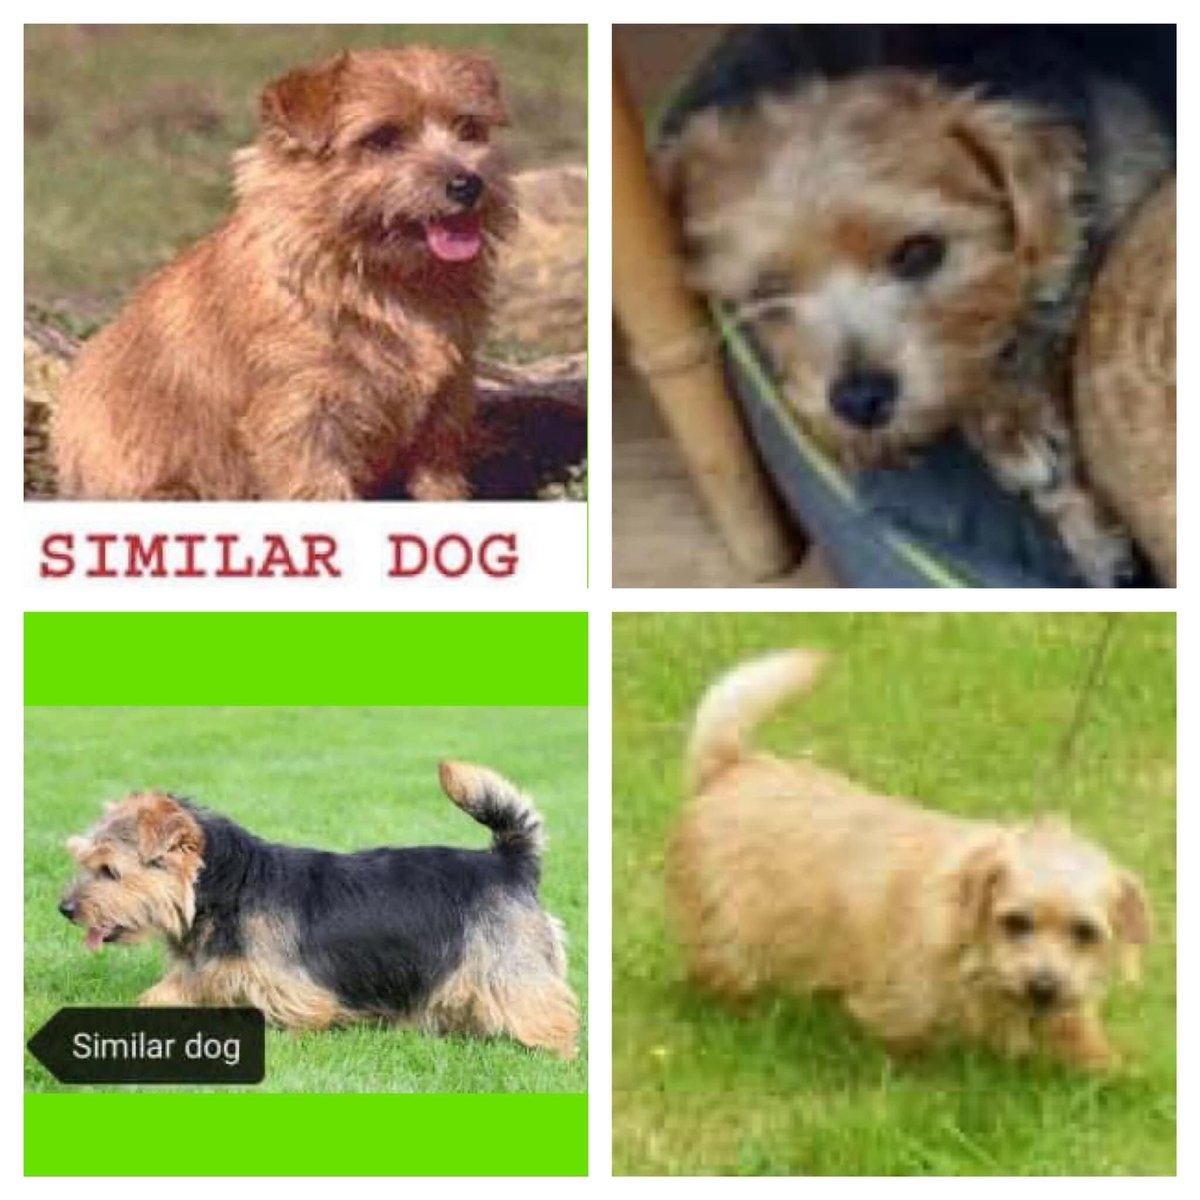 Pls RT PIPPA, JILLY, BELLA AND JESS #STOLEN: 4 #NorfolkTerriers Taken overnight from home in #Pilning, North #Bristol on 20th - 21st October 2021. 2 Red and 2 Black and Tan, all females Call @ASPolice on 101 #PetAbduction #PetTheftReform #FernsLaw #MakeChipsCount @bs2510